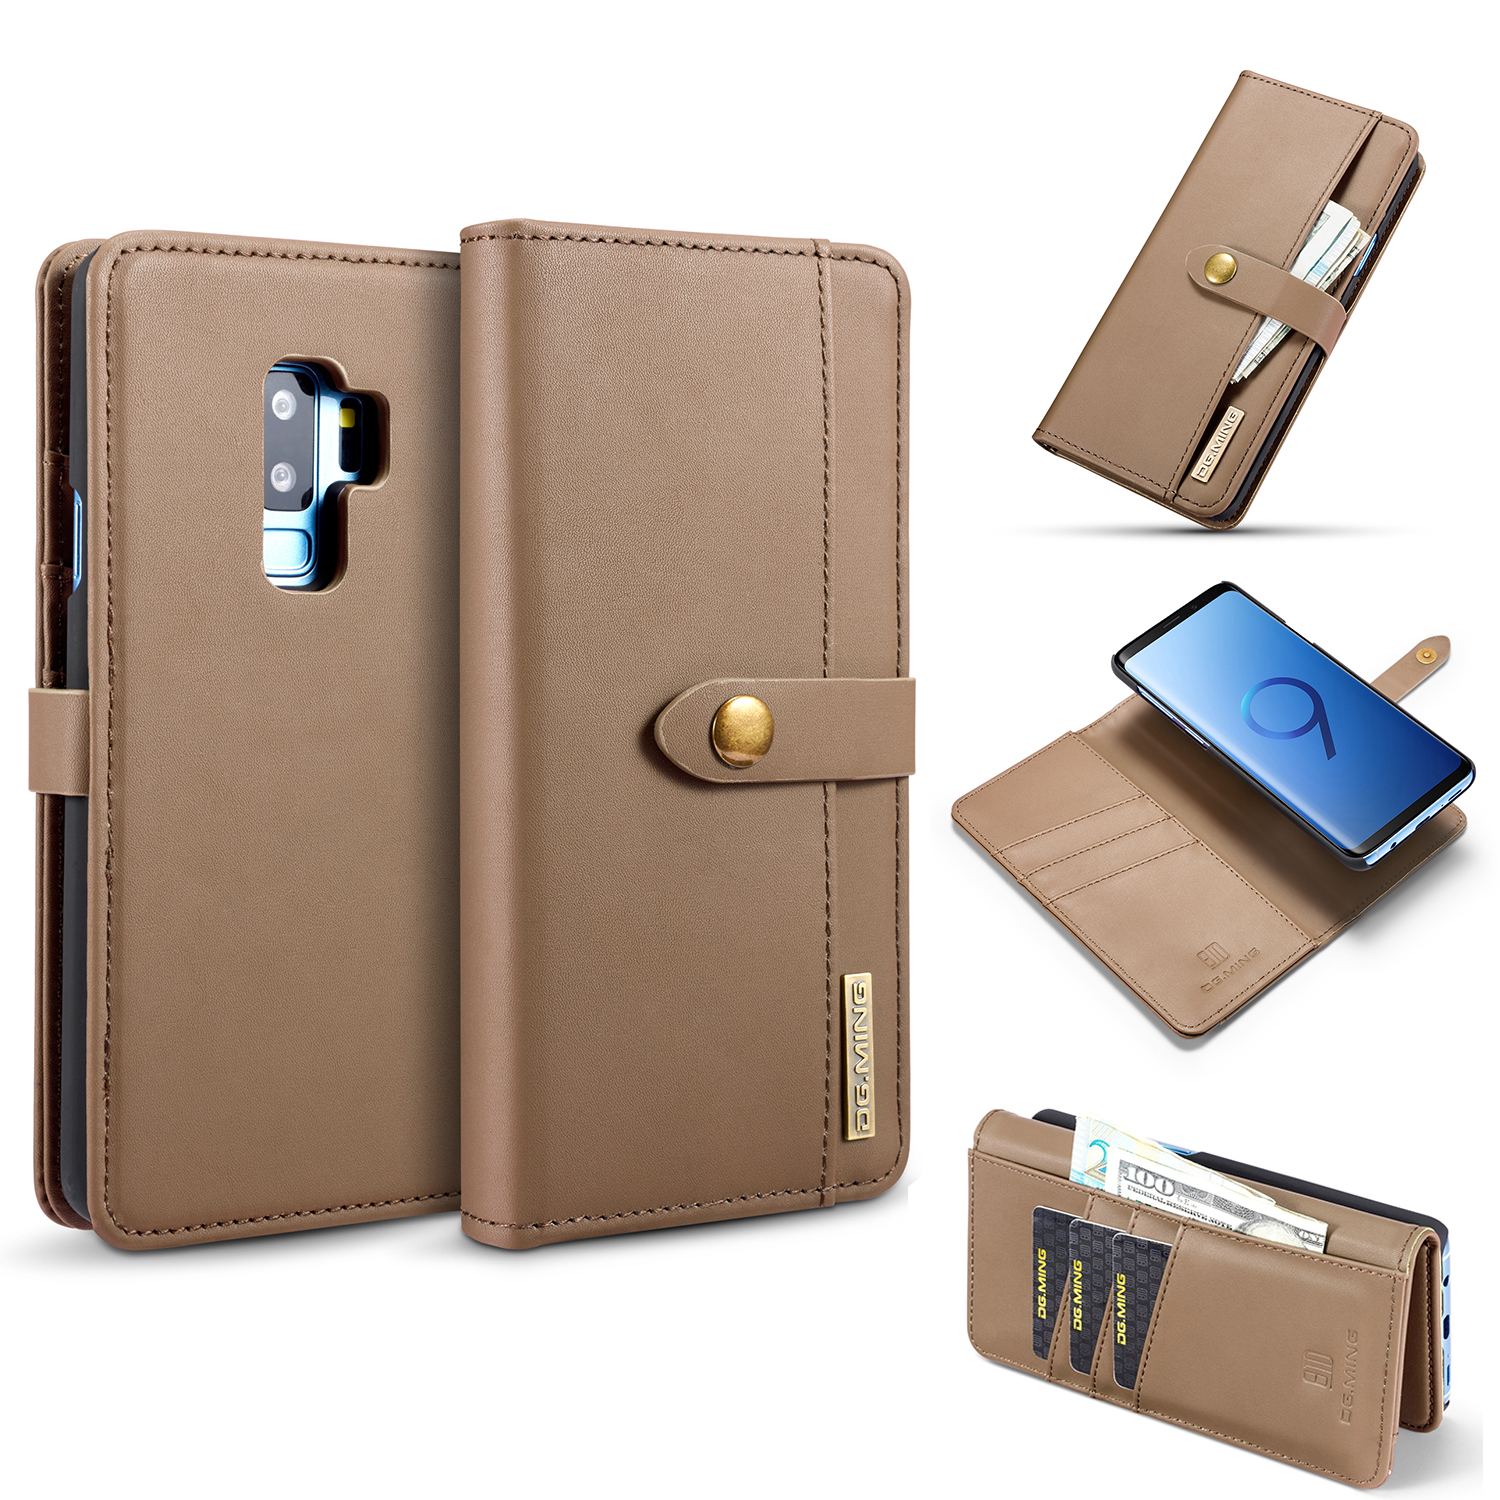 Galaxy S9 Cases and Covers, Allytech PU Leather Magnetic Detachable TPU Cover Folio Flip Stand Multi Function Cards Money Holder Protective Wallet Case Cover for Samsung Galaxy S9, Brown